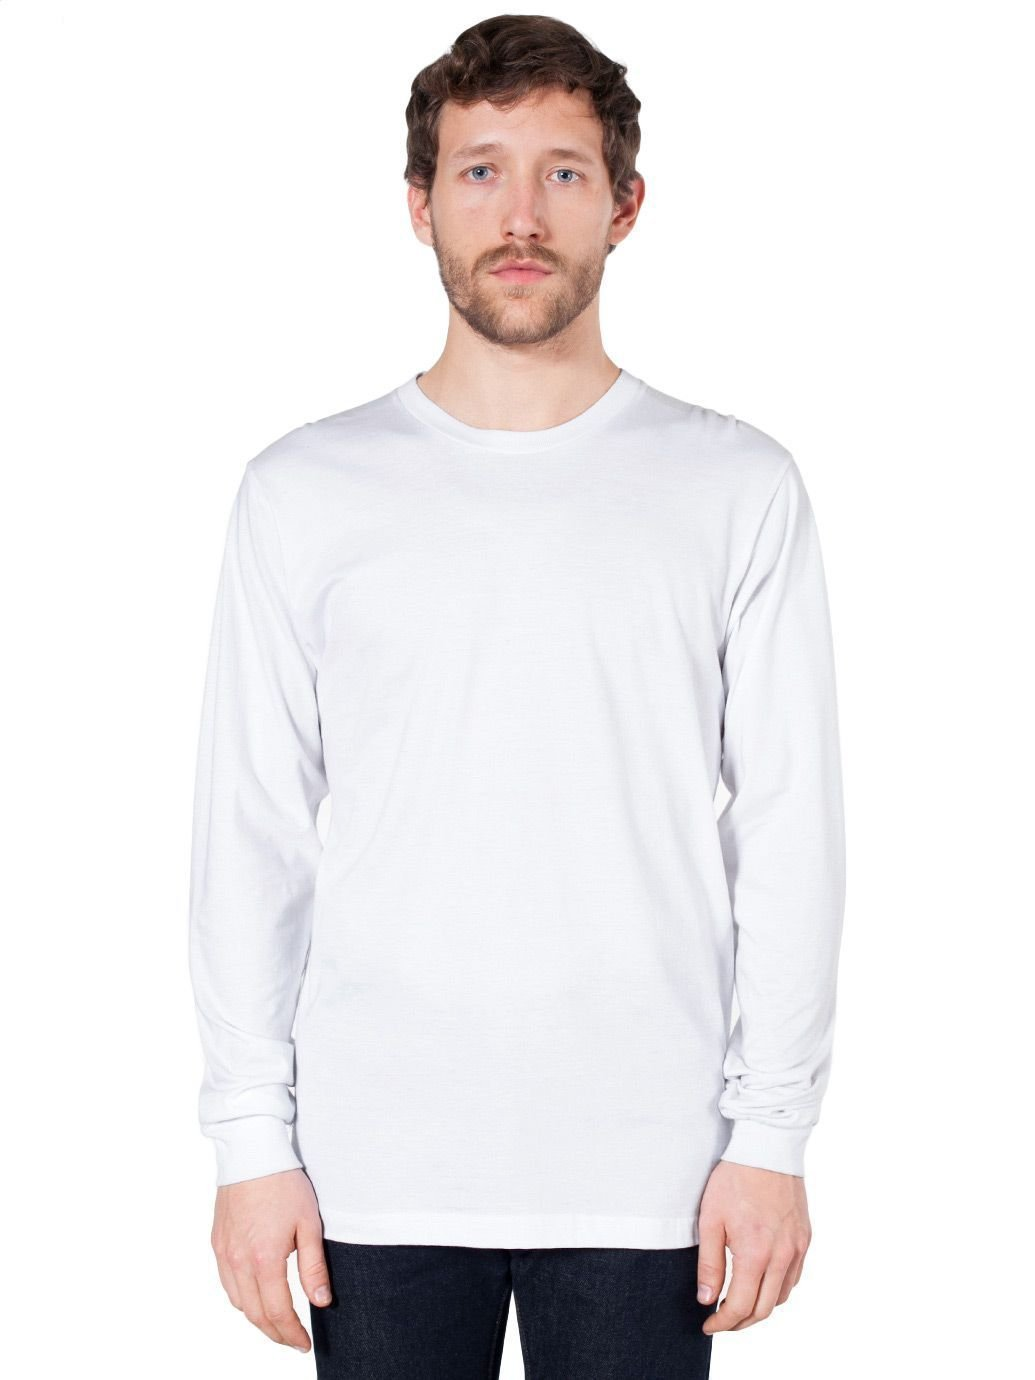 American Apparel Fine Jersey Long Sleeve T-Shirt - White - Large